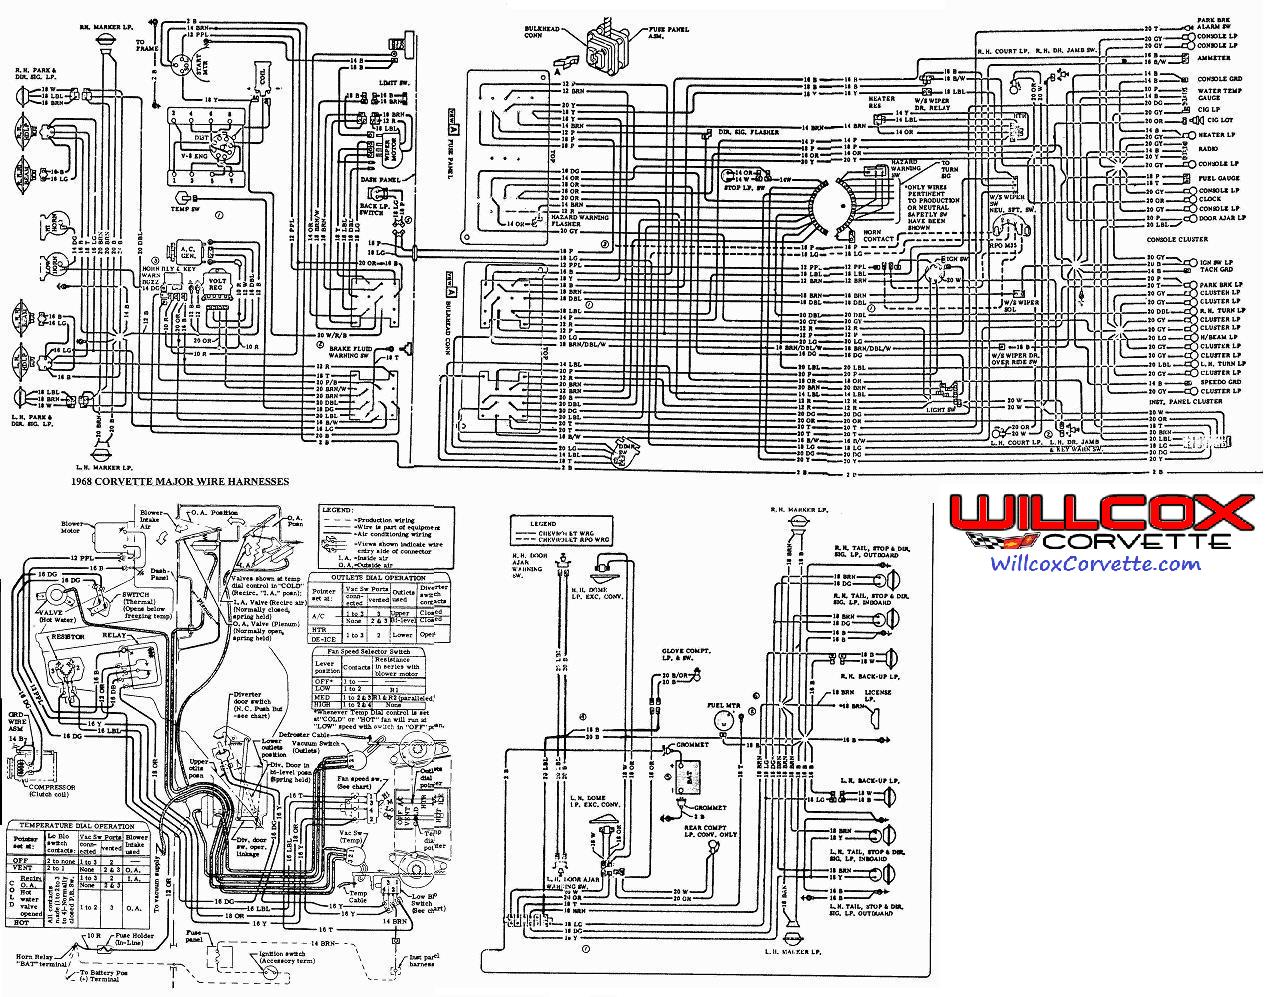 1968 corvette wire schematic 68 corvette from the aim willcox rh repairs willcoxcorvette com 66 corvette wiring diagram 1968 corvette wire diagram